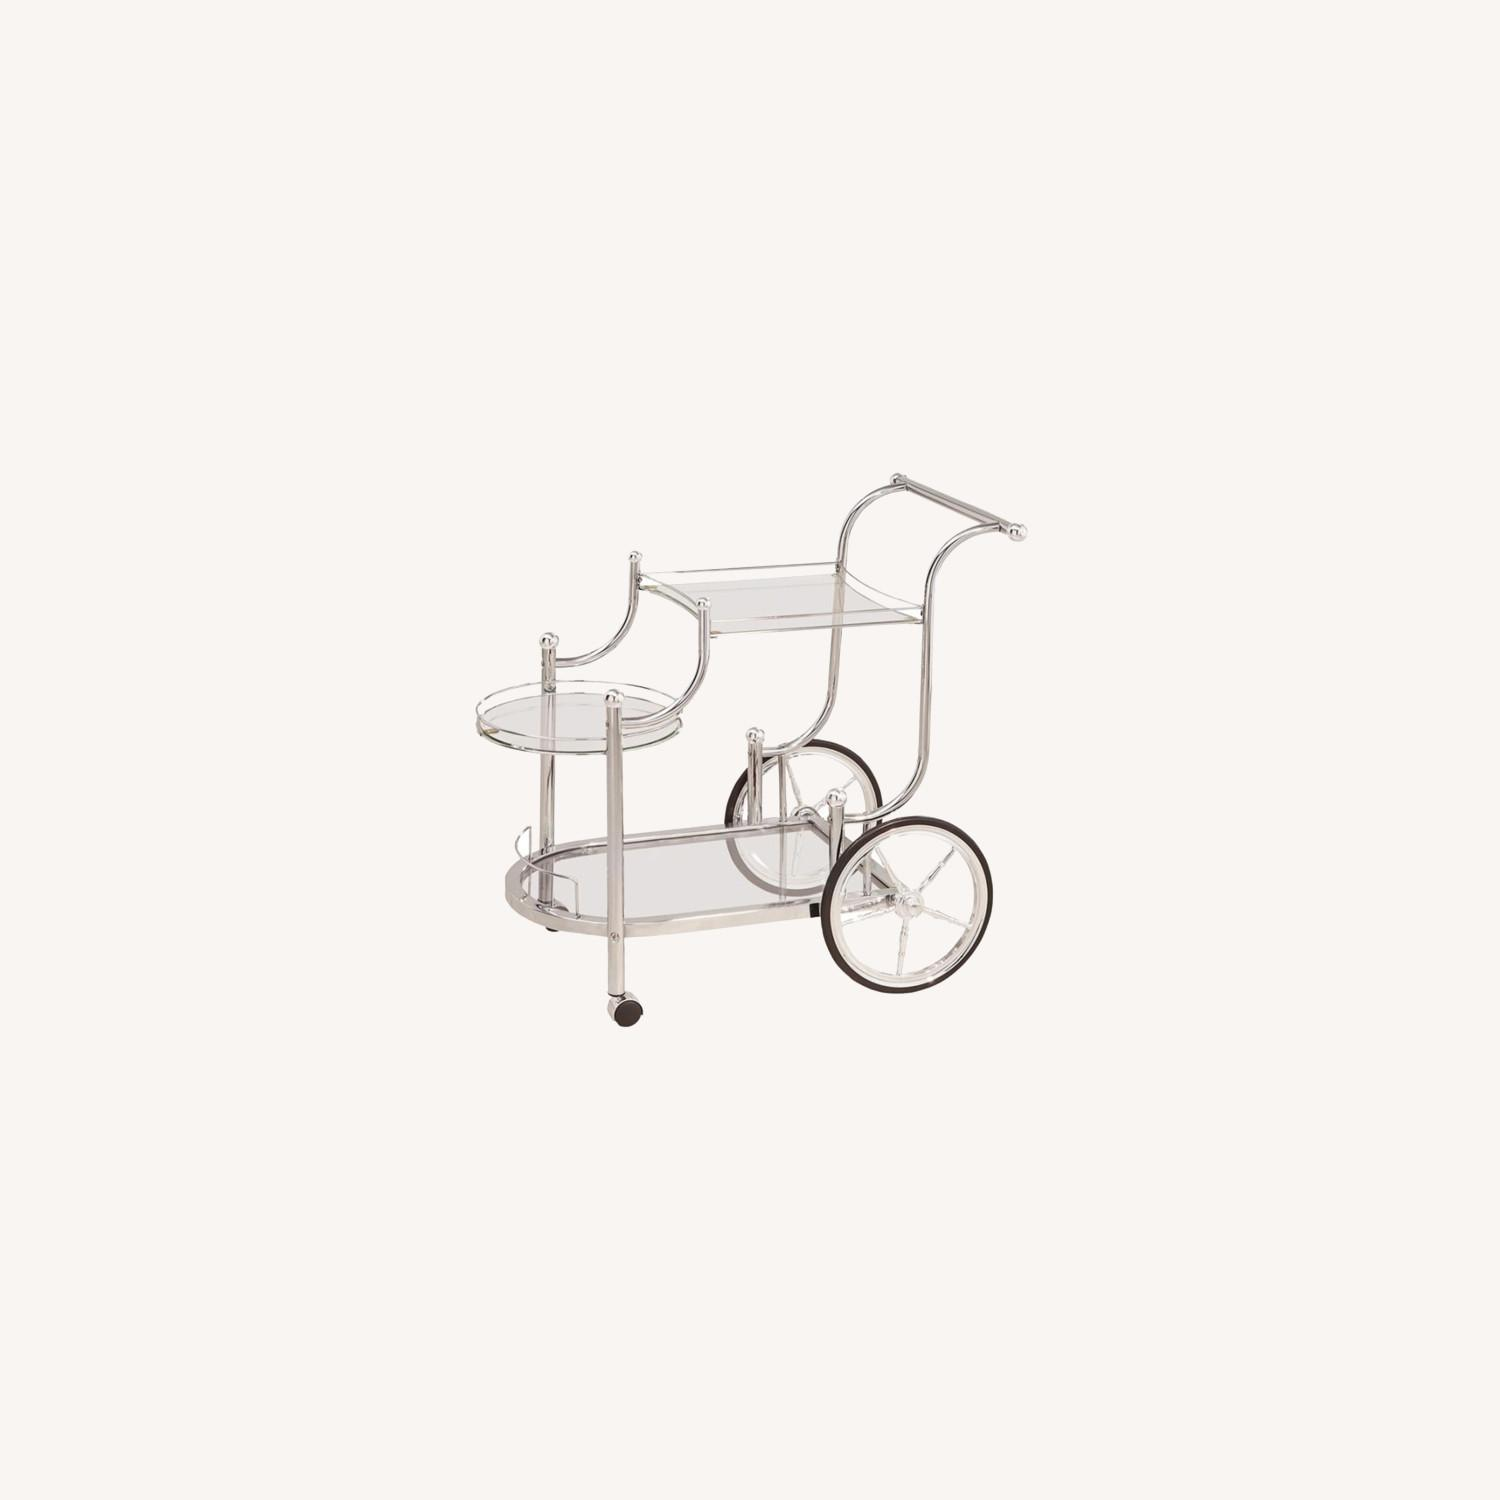 Serving Cart In Chrome Finish W/ Tempered Glass - image-3